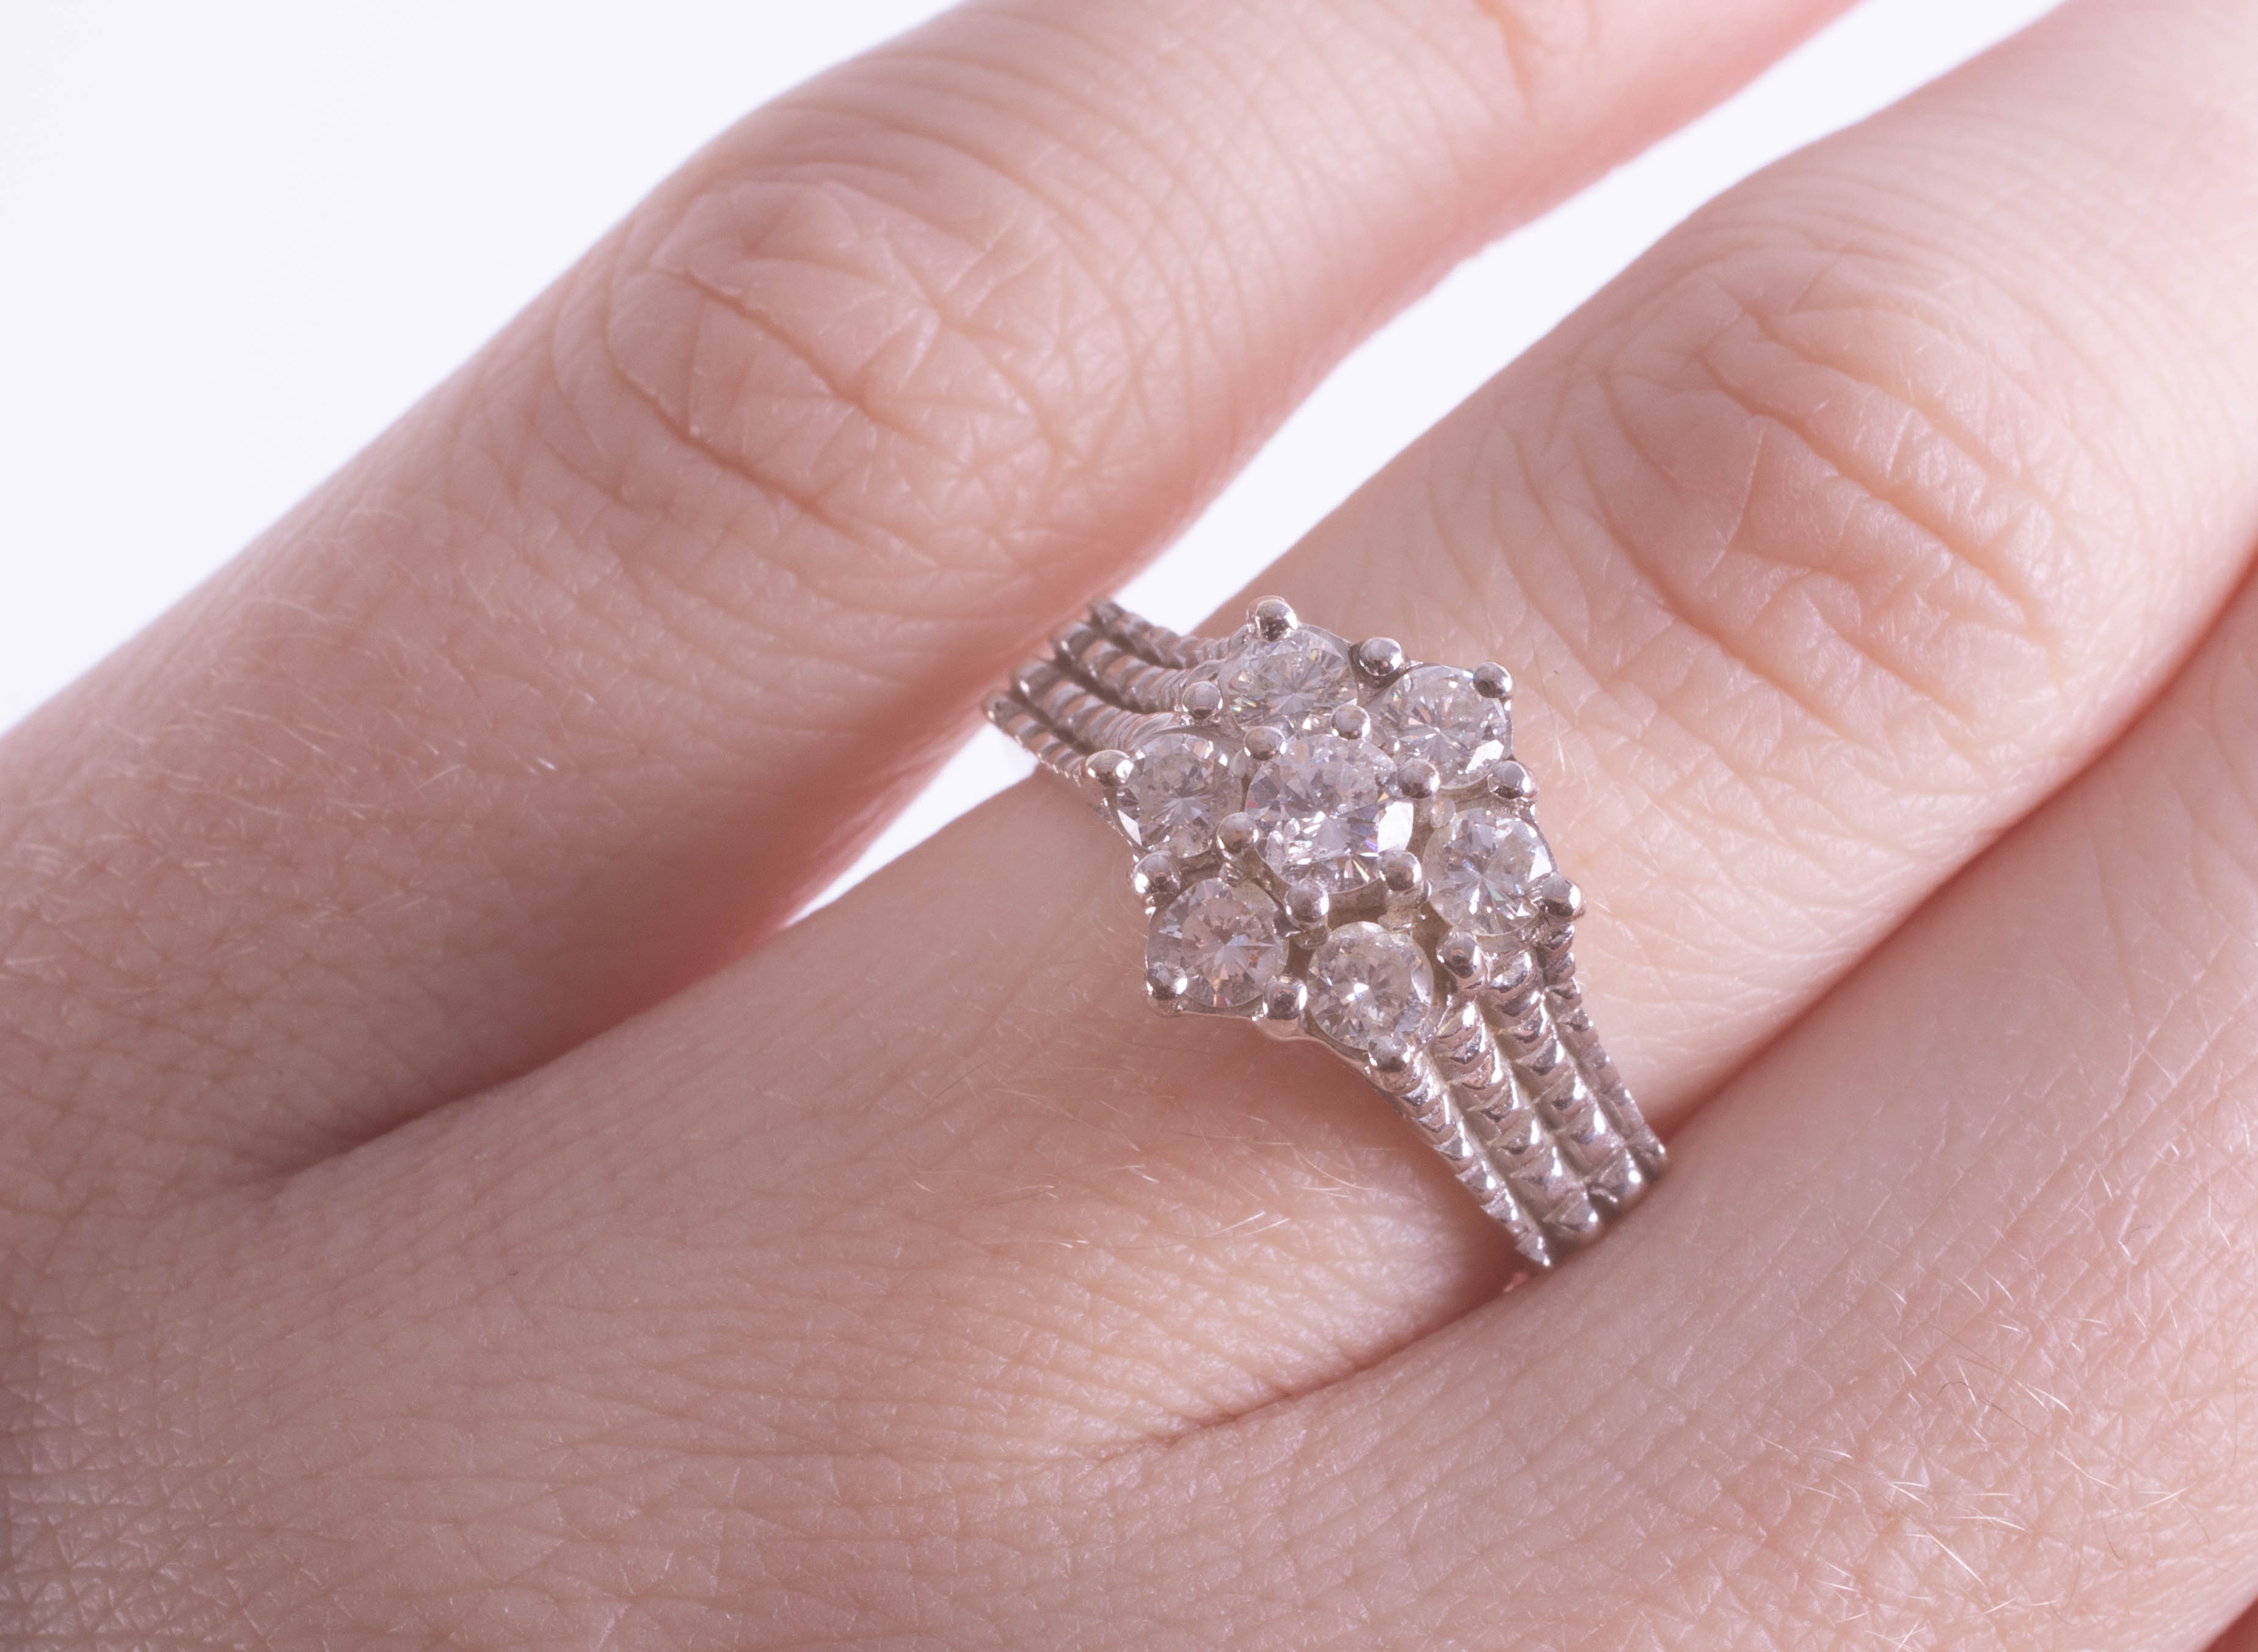 Lot 045 - An 18ct diamond cluster ring set in white gold, size J/K.